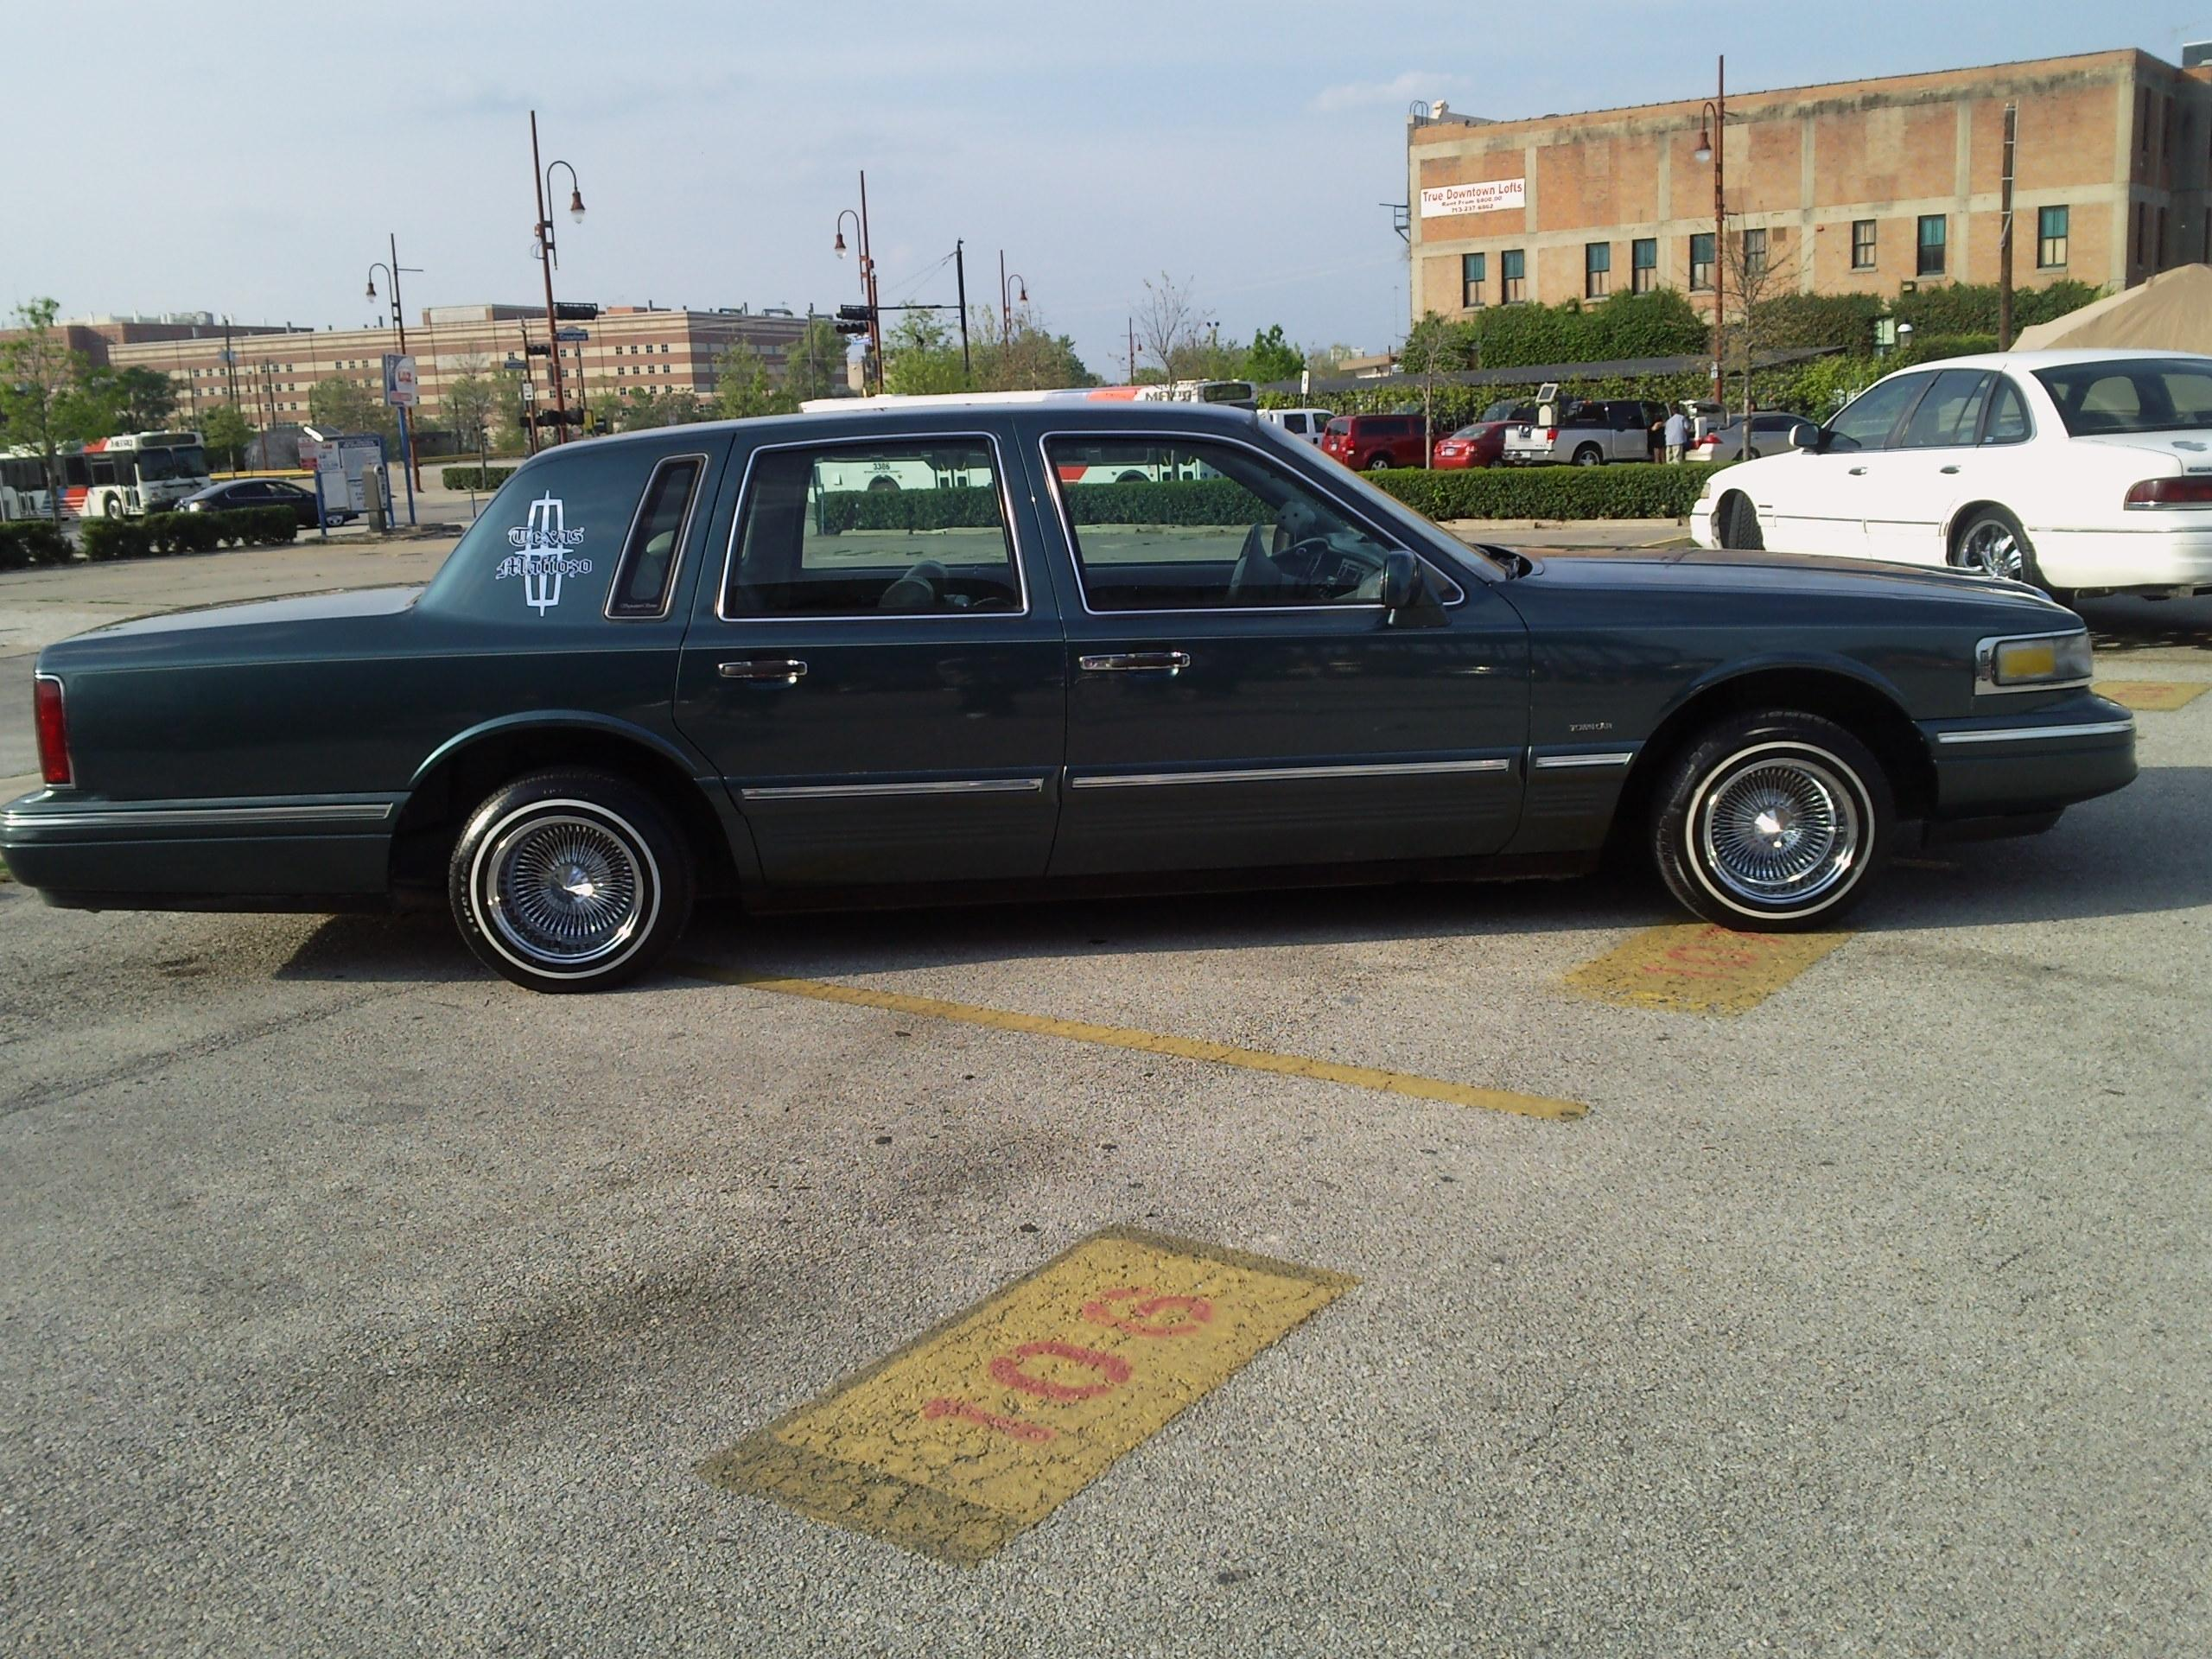 Carnales Styleccs Profile In Houston Tx Lincoln Town Car Lowrider Another Stylecc 1996 Post 15100743